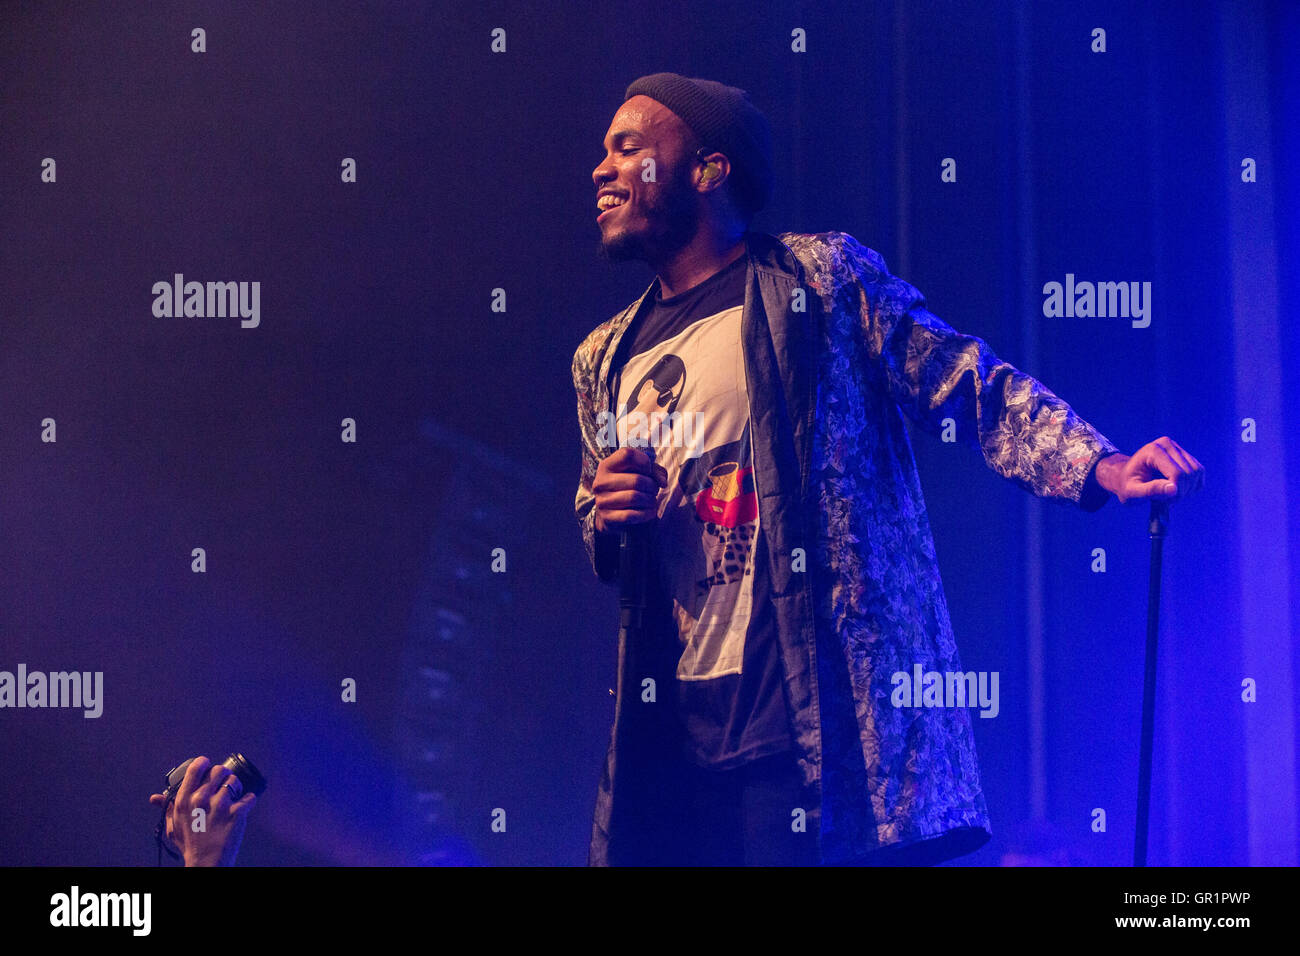 Anderson .Paak & The Free Nationals at The Vogue Theatre in Vancouver, BC on September 4th 2016 - Stock Image